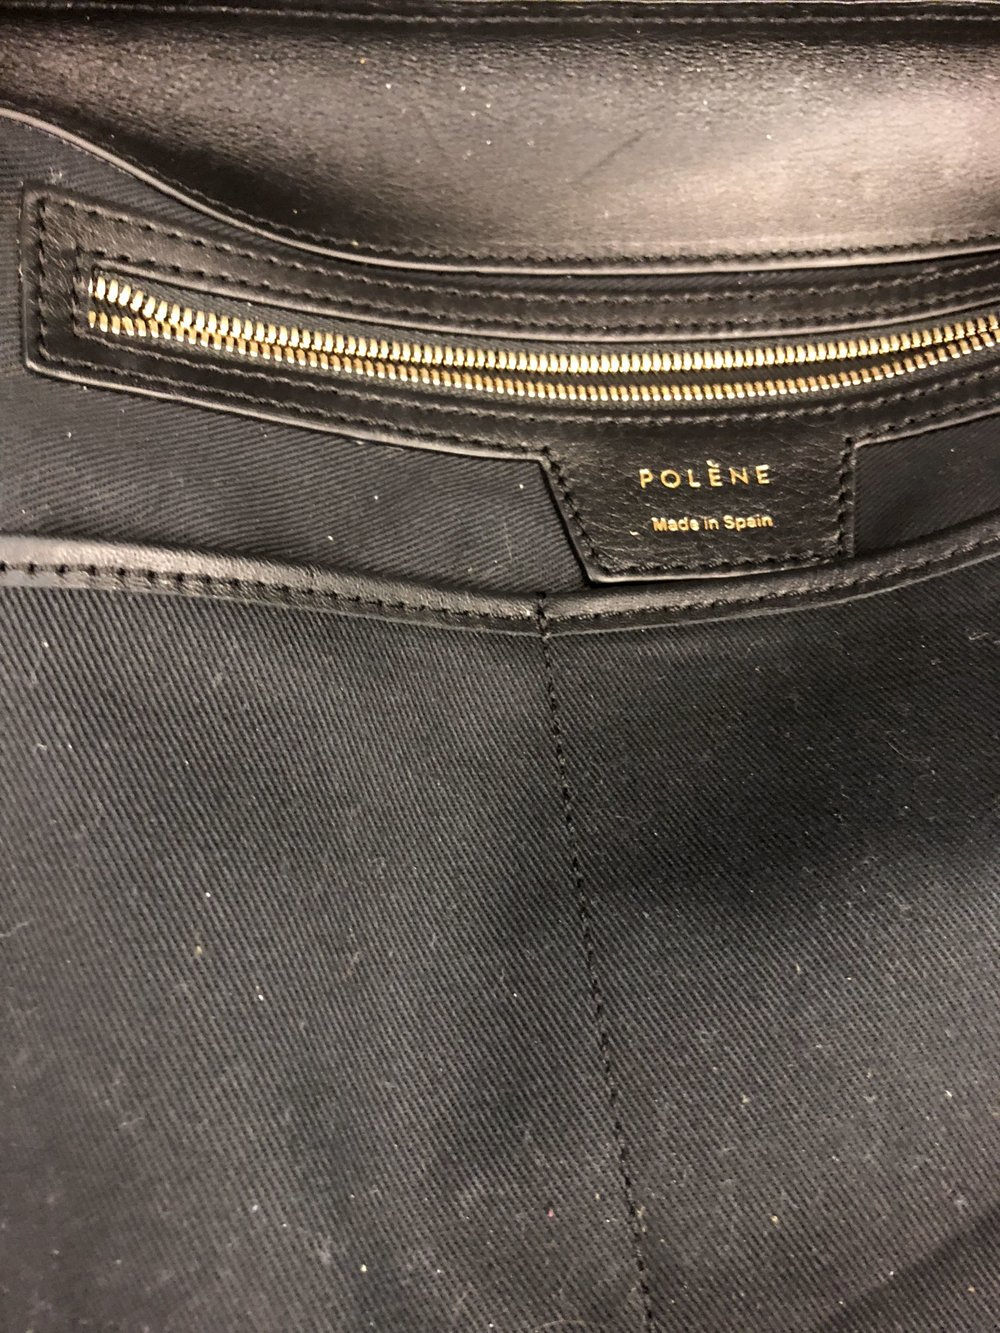 Polene bag review